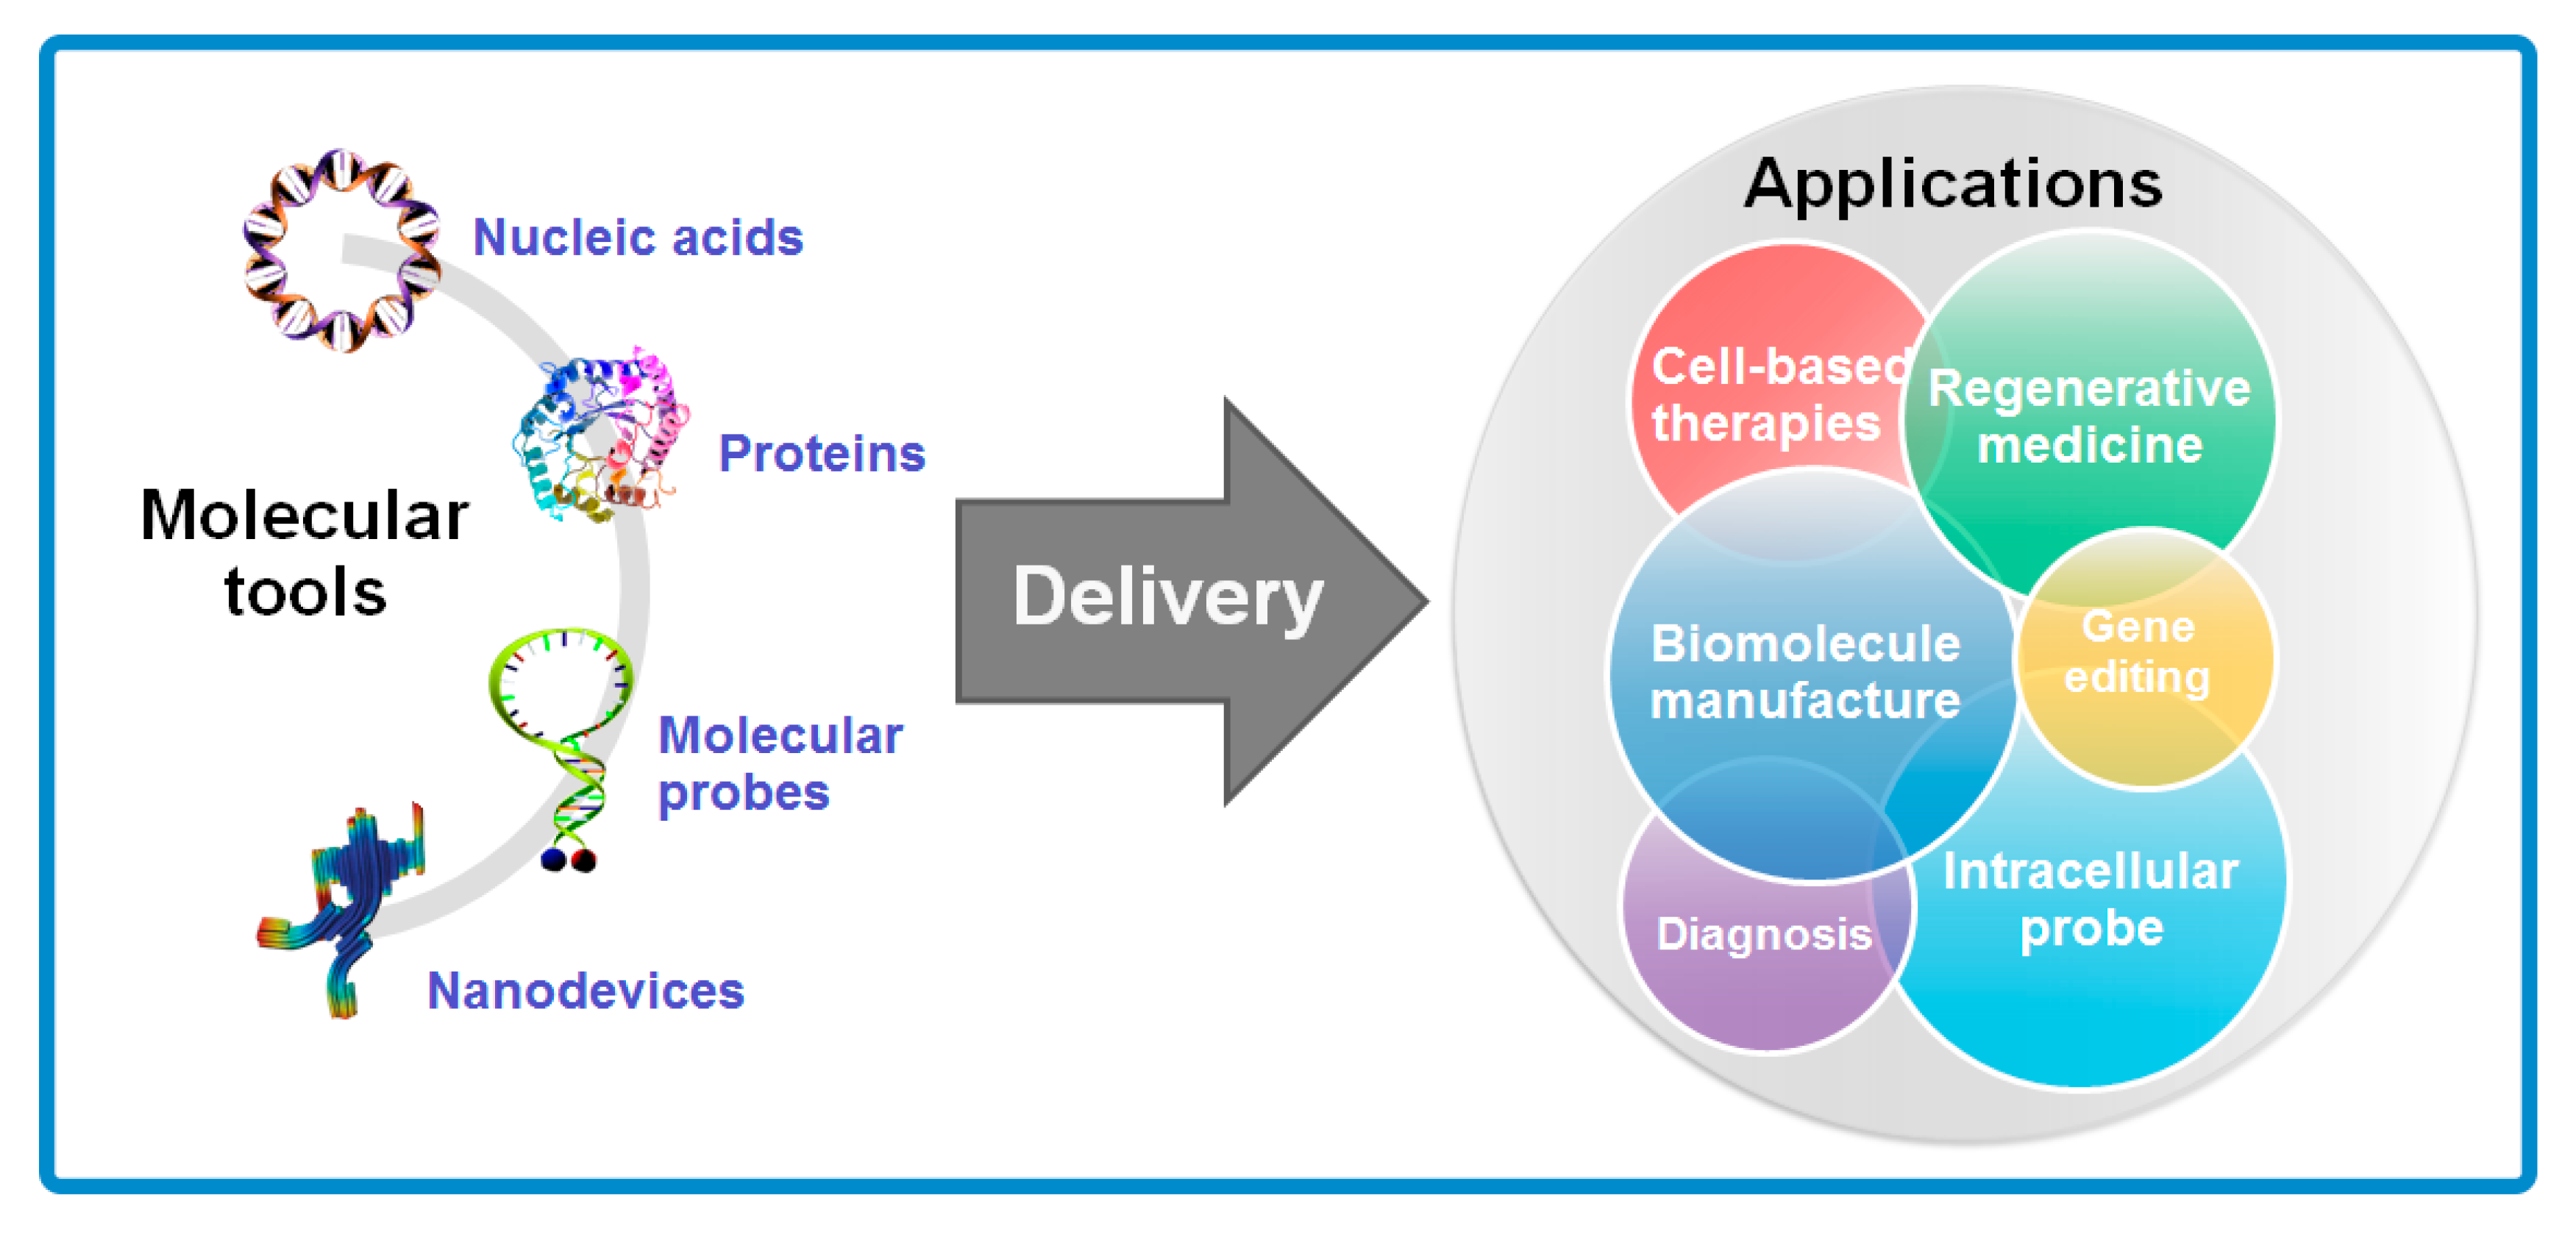 Molecules Free Full Text A Review On Electroporation Based Intracellular Delivery Html Enrich your vocabulary with the. intracellular delivery